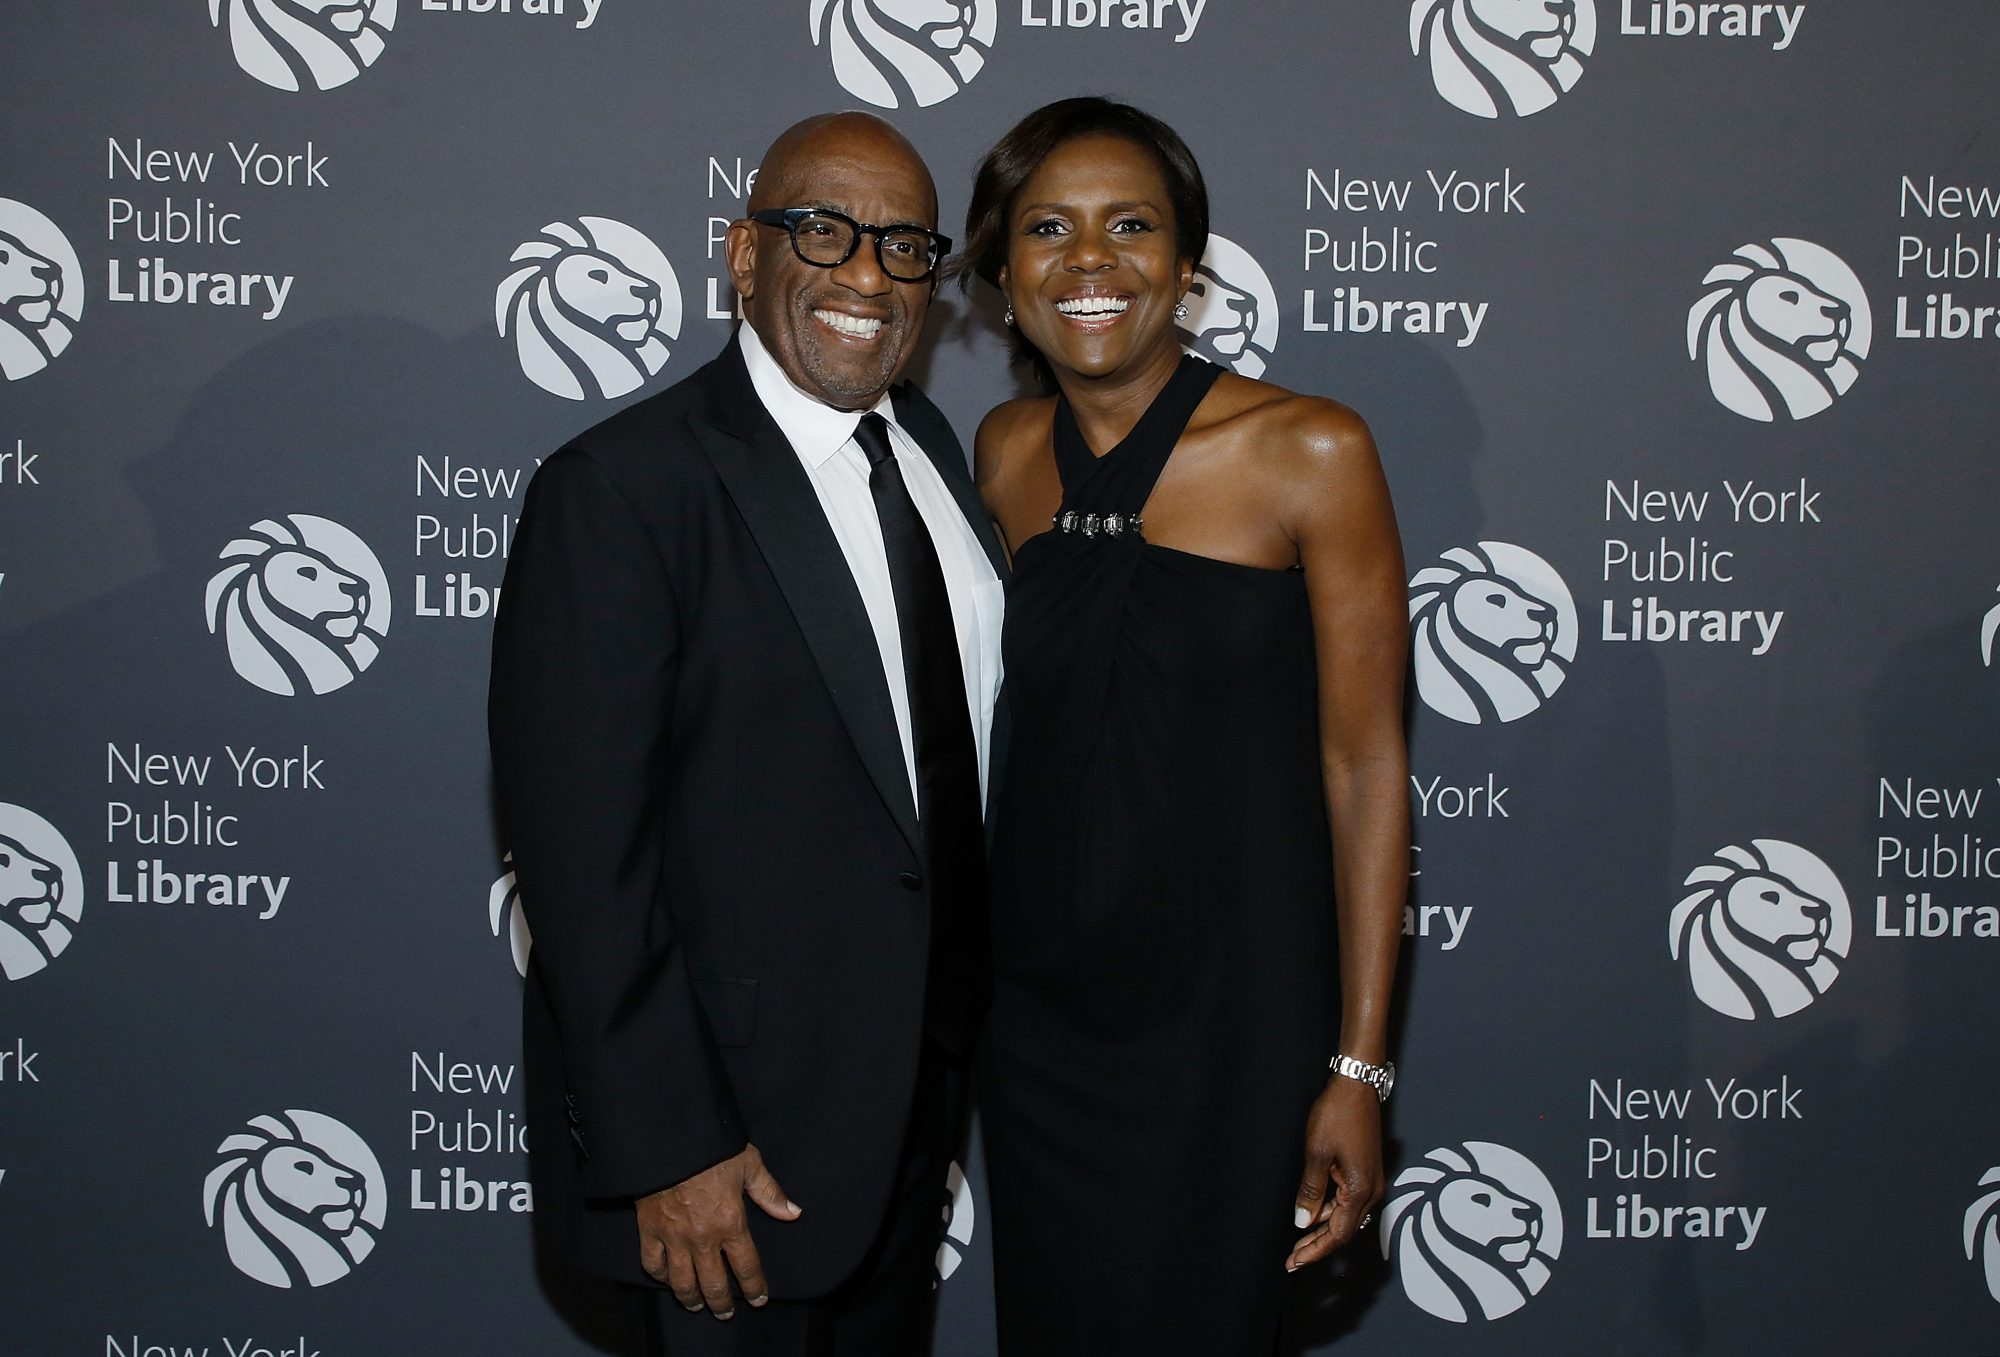 al roker and deborah roberts at the New York Public Library 2017 Library Lions Gala